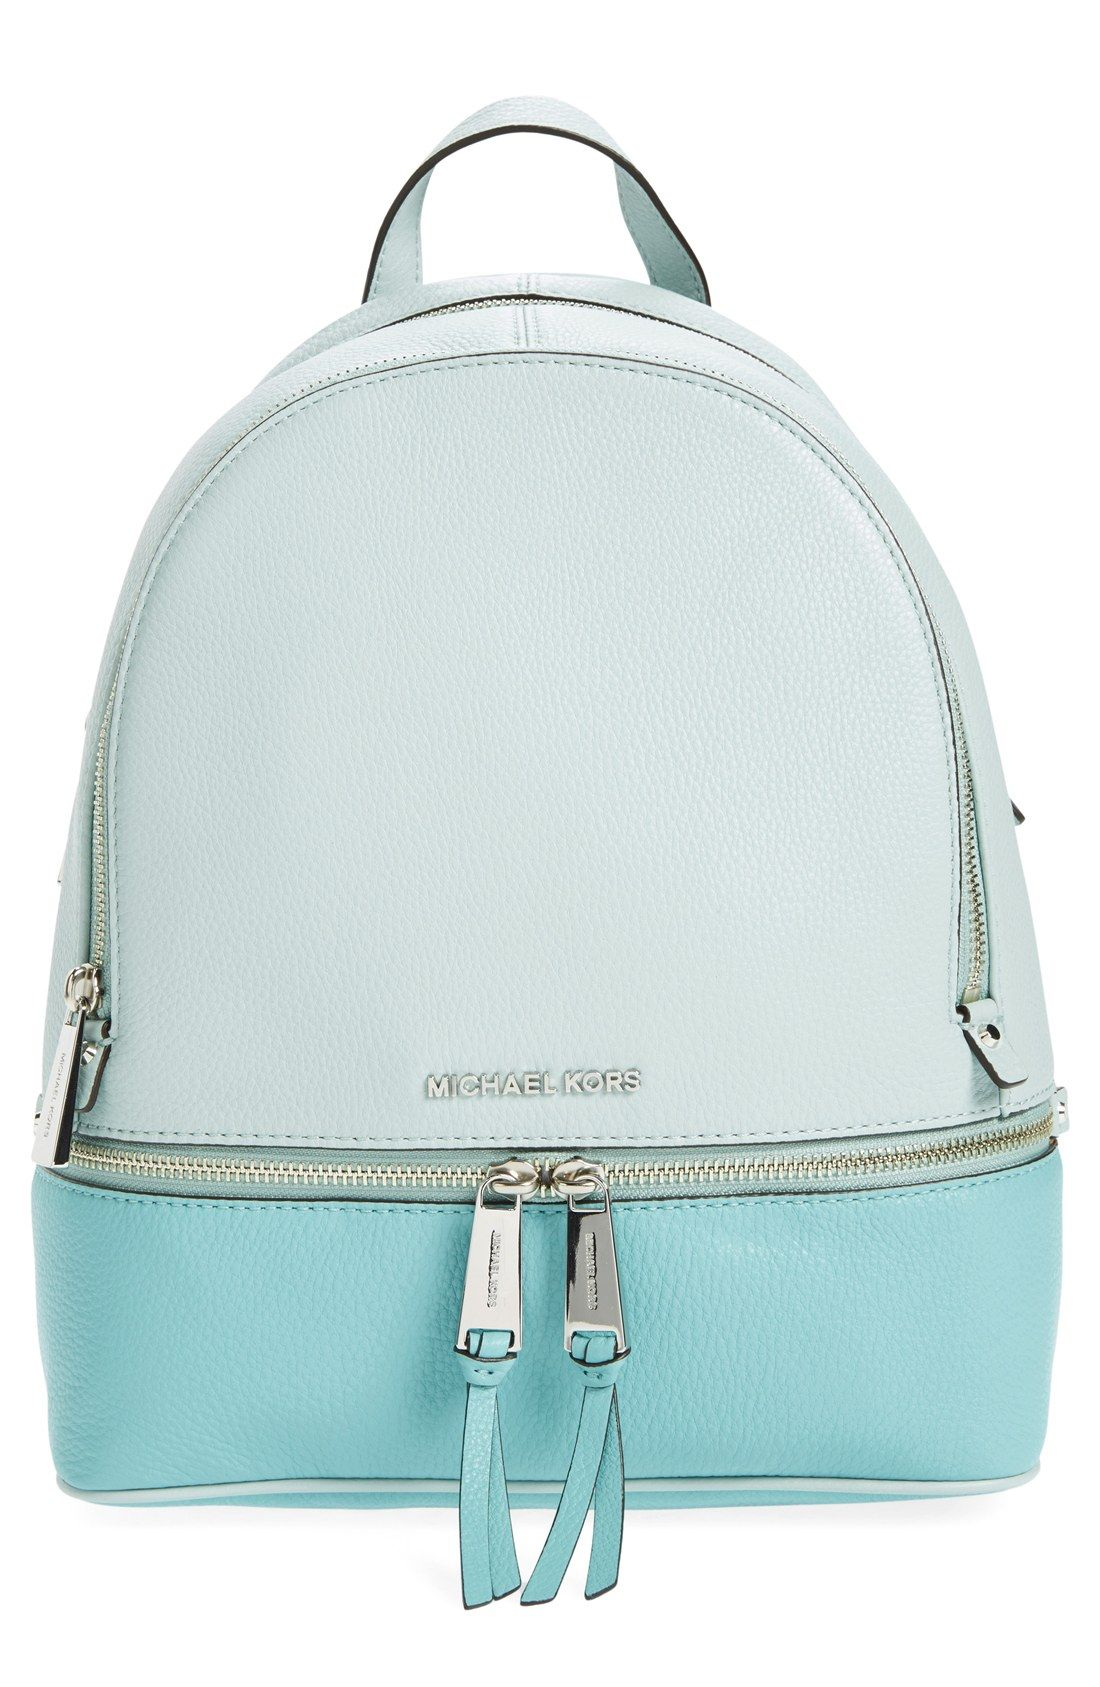 b10f3218da2b Adoring this leather backpack in shades of blue for a fun color-blocked look .